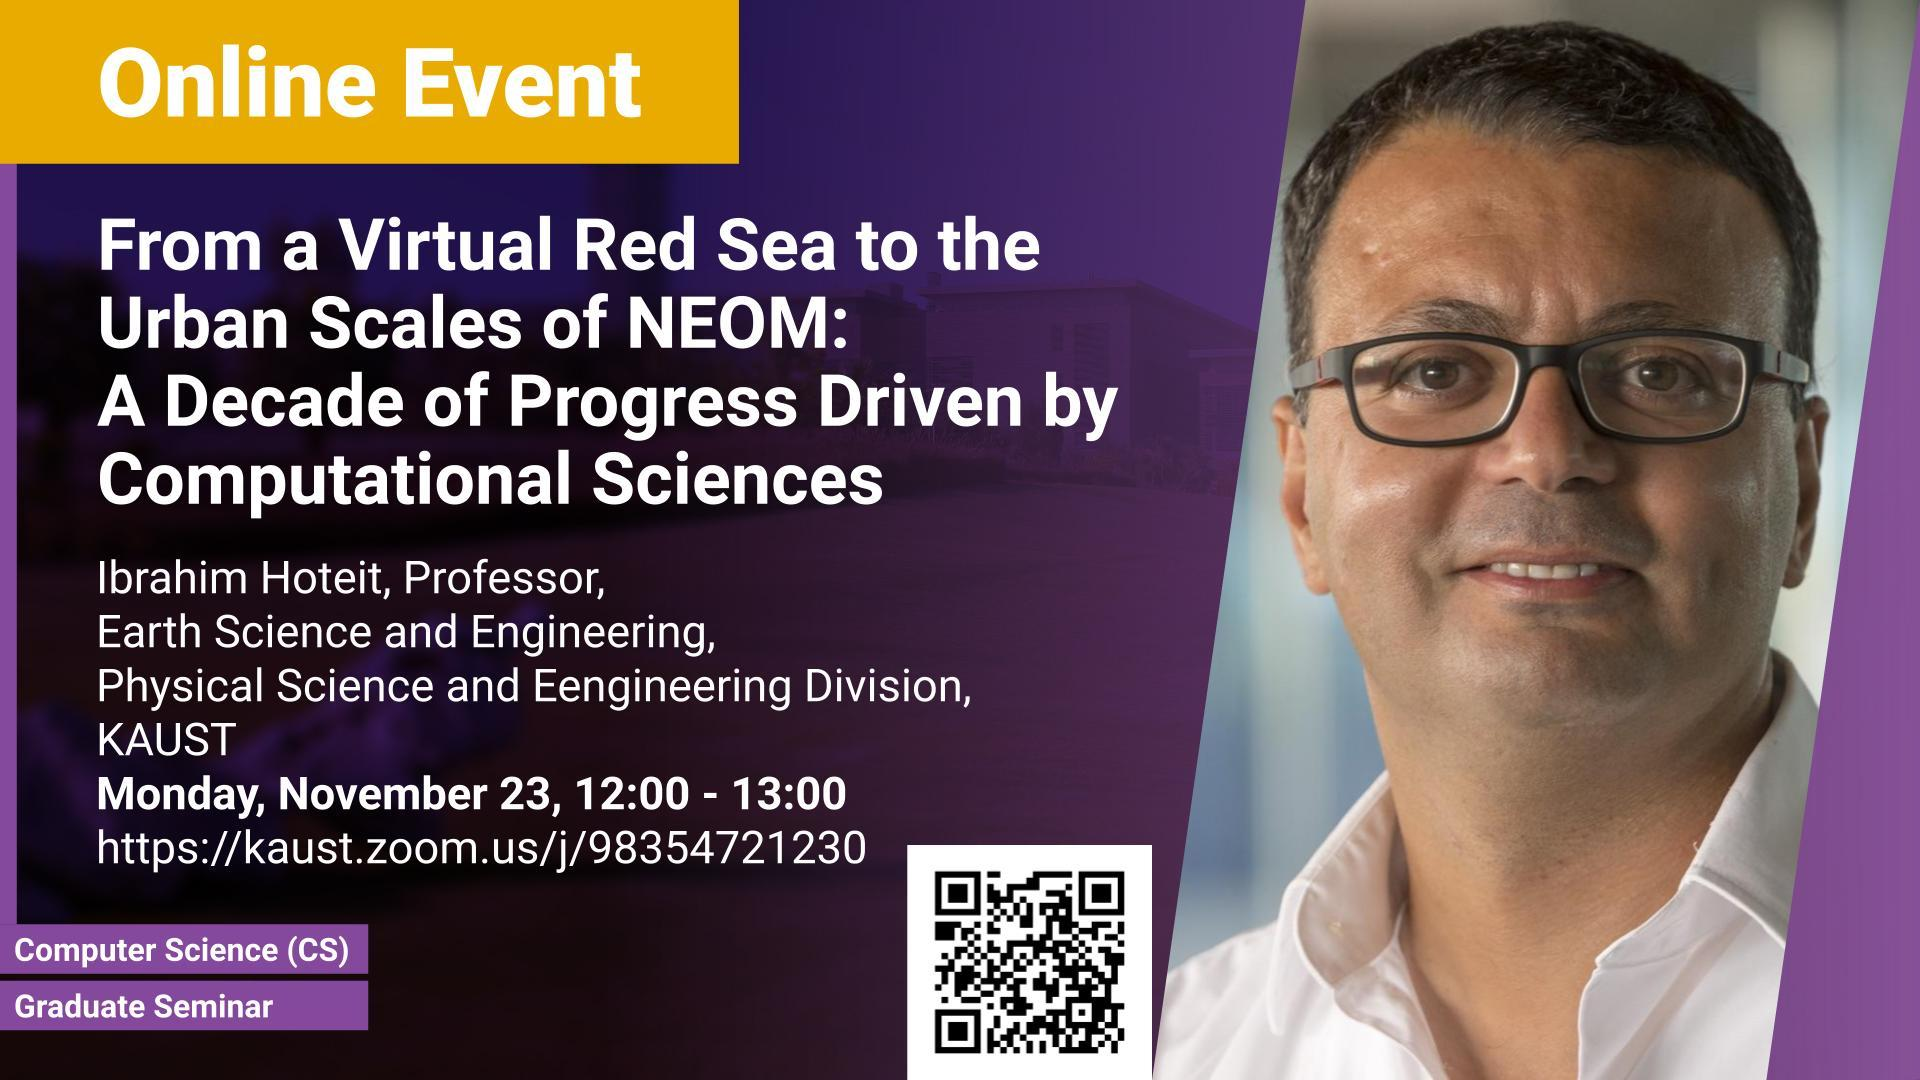 KAUST CEMSE CS Graduate Seminar Ibrahim Hoteit From a Virtual Red Sea to the Urban Scales of NEOM